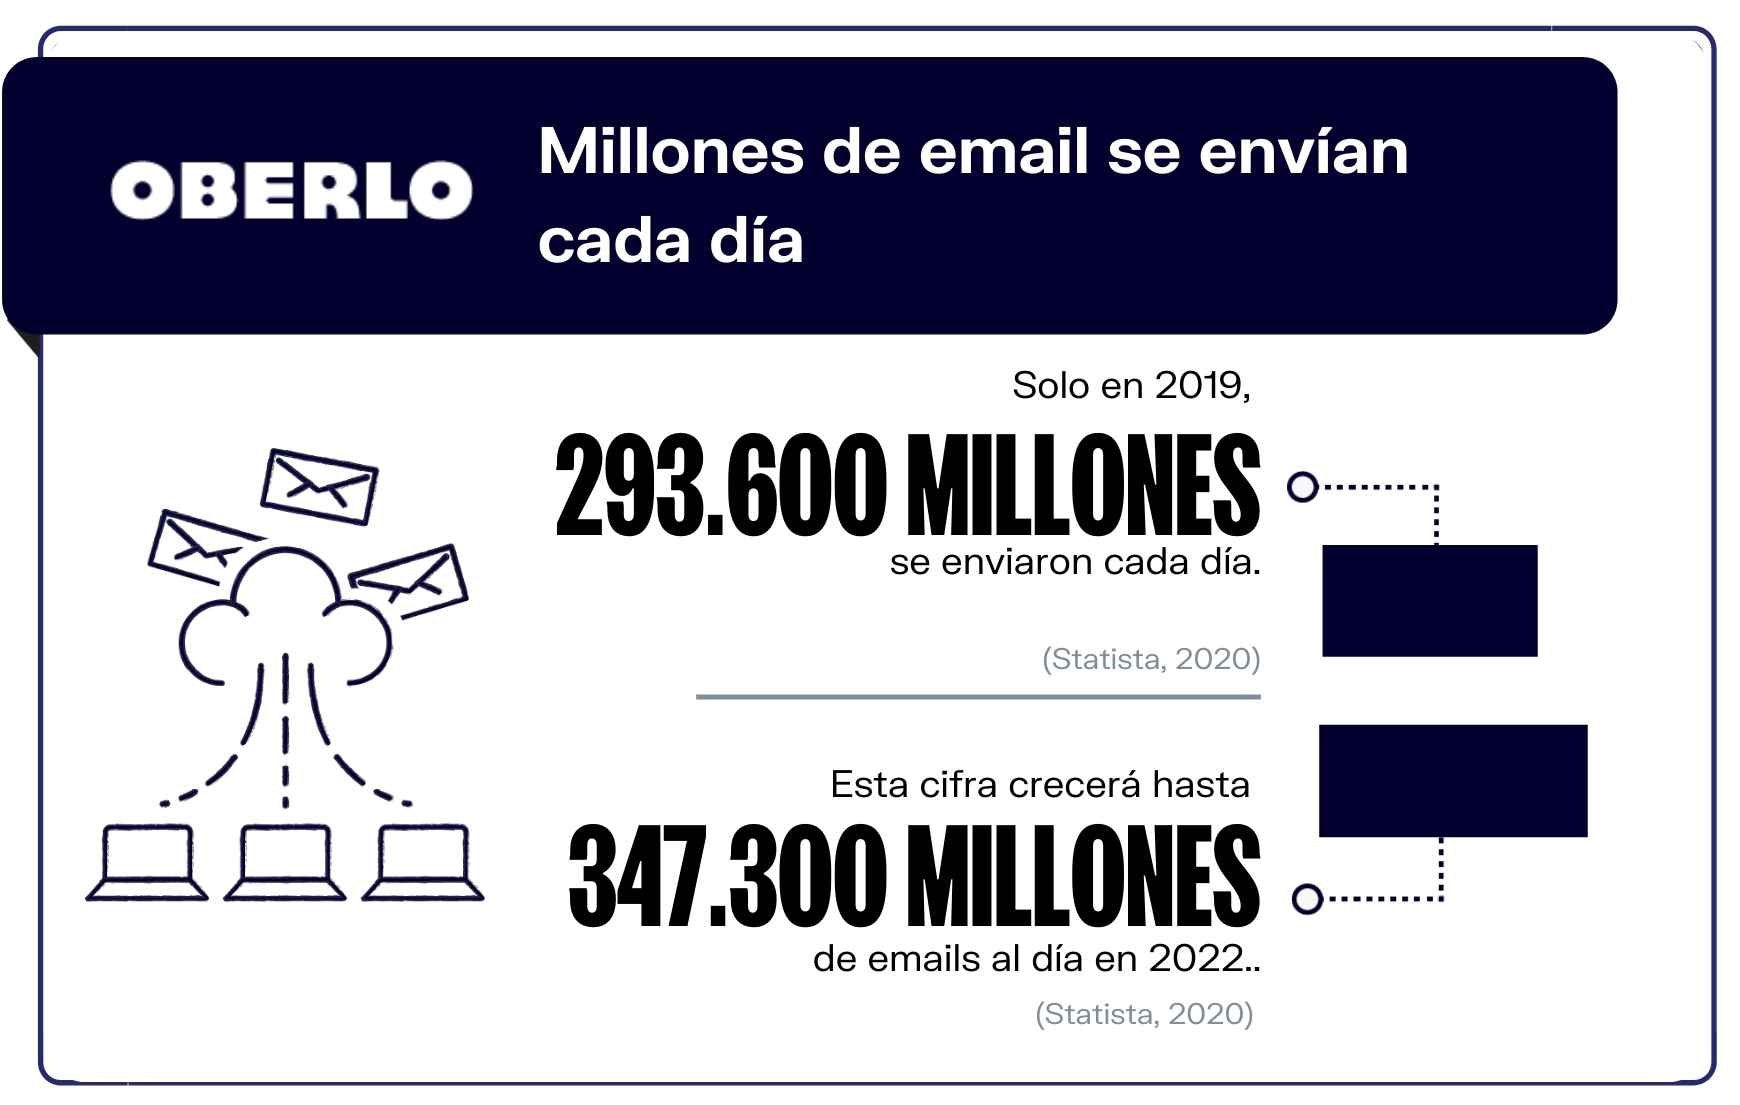 Email marketing en cifras